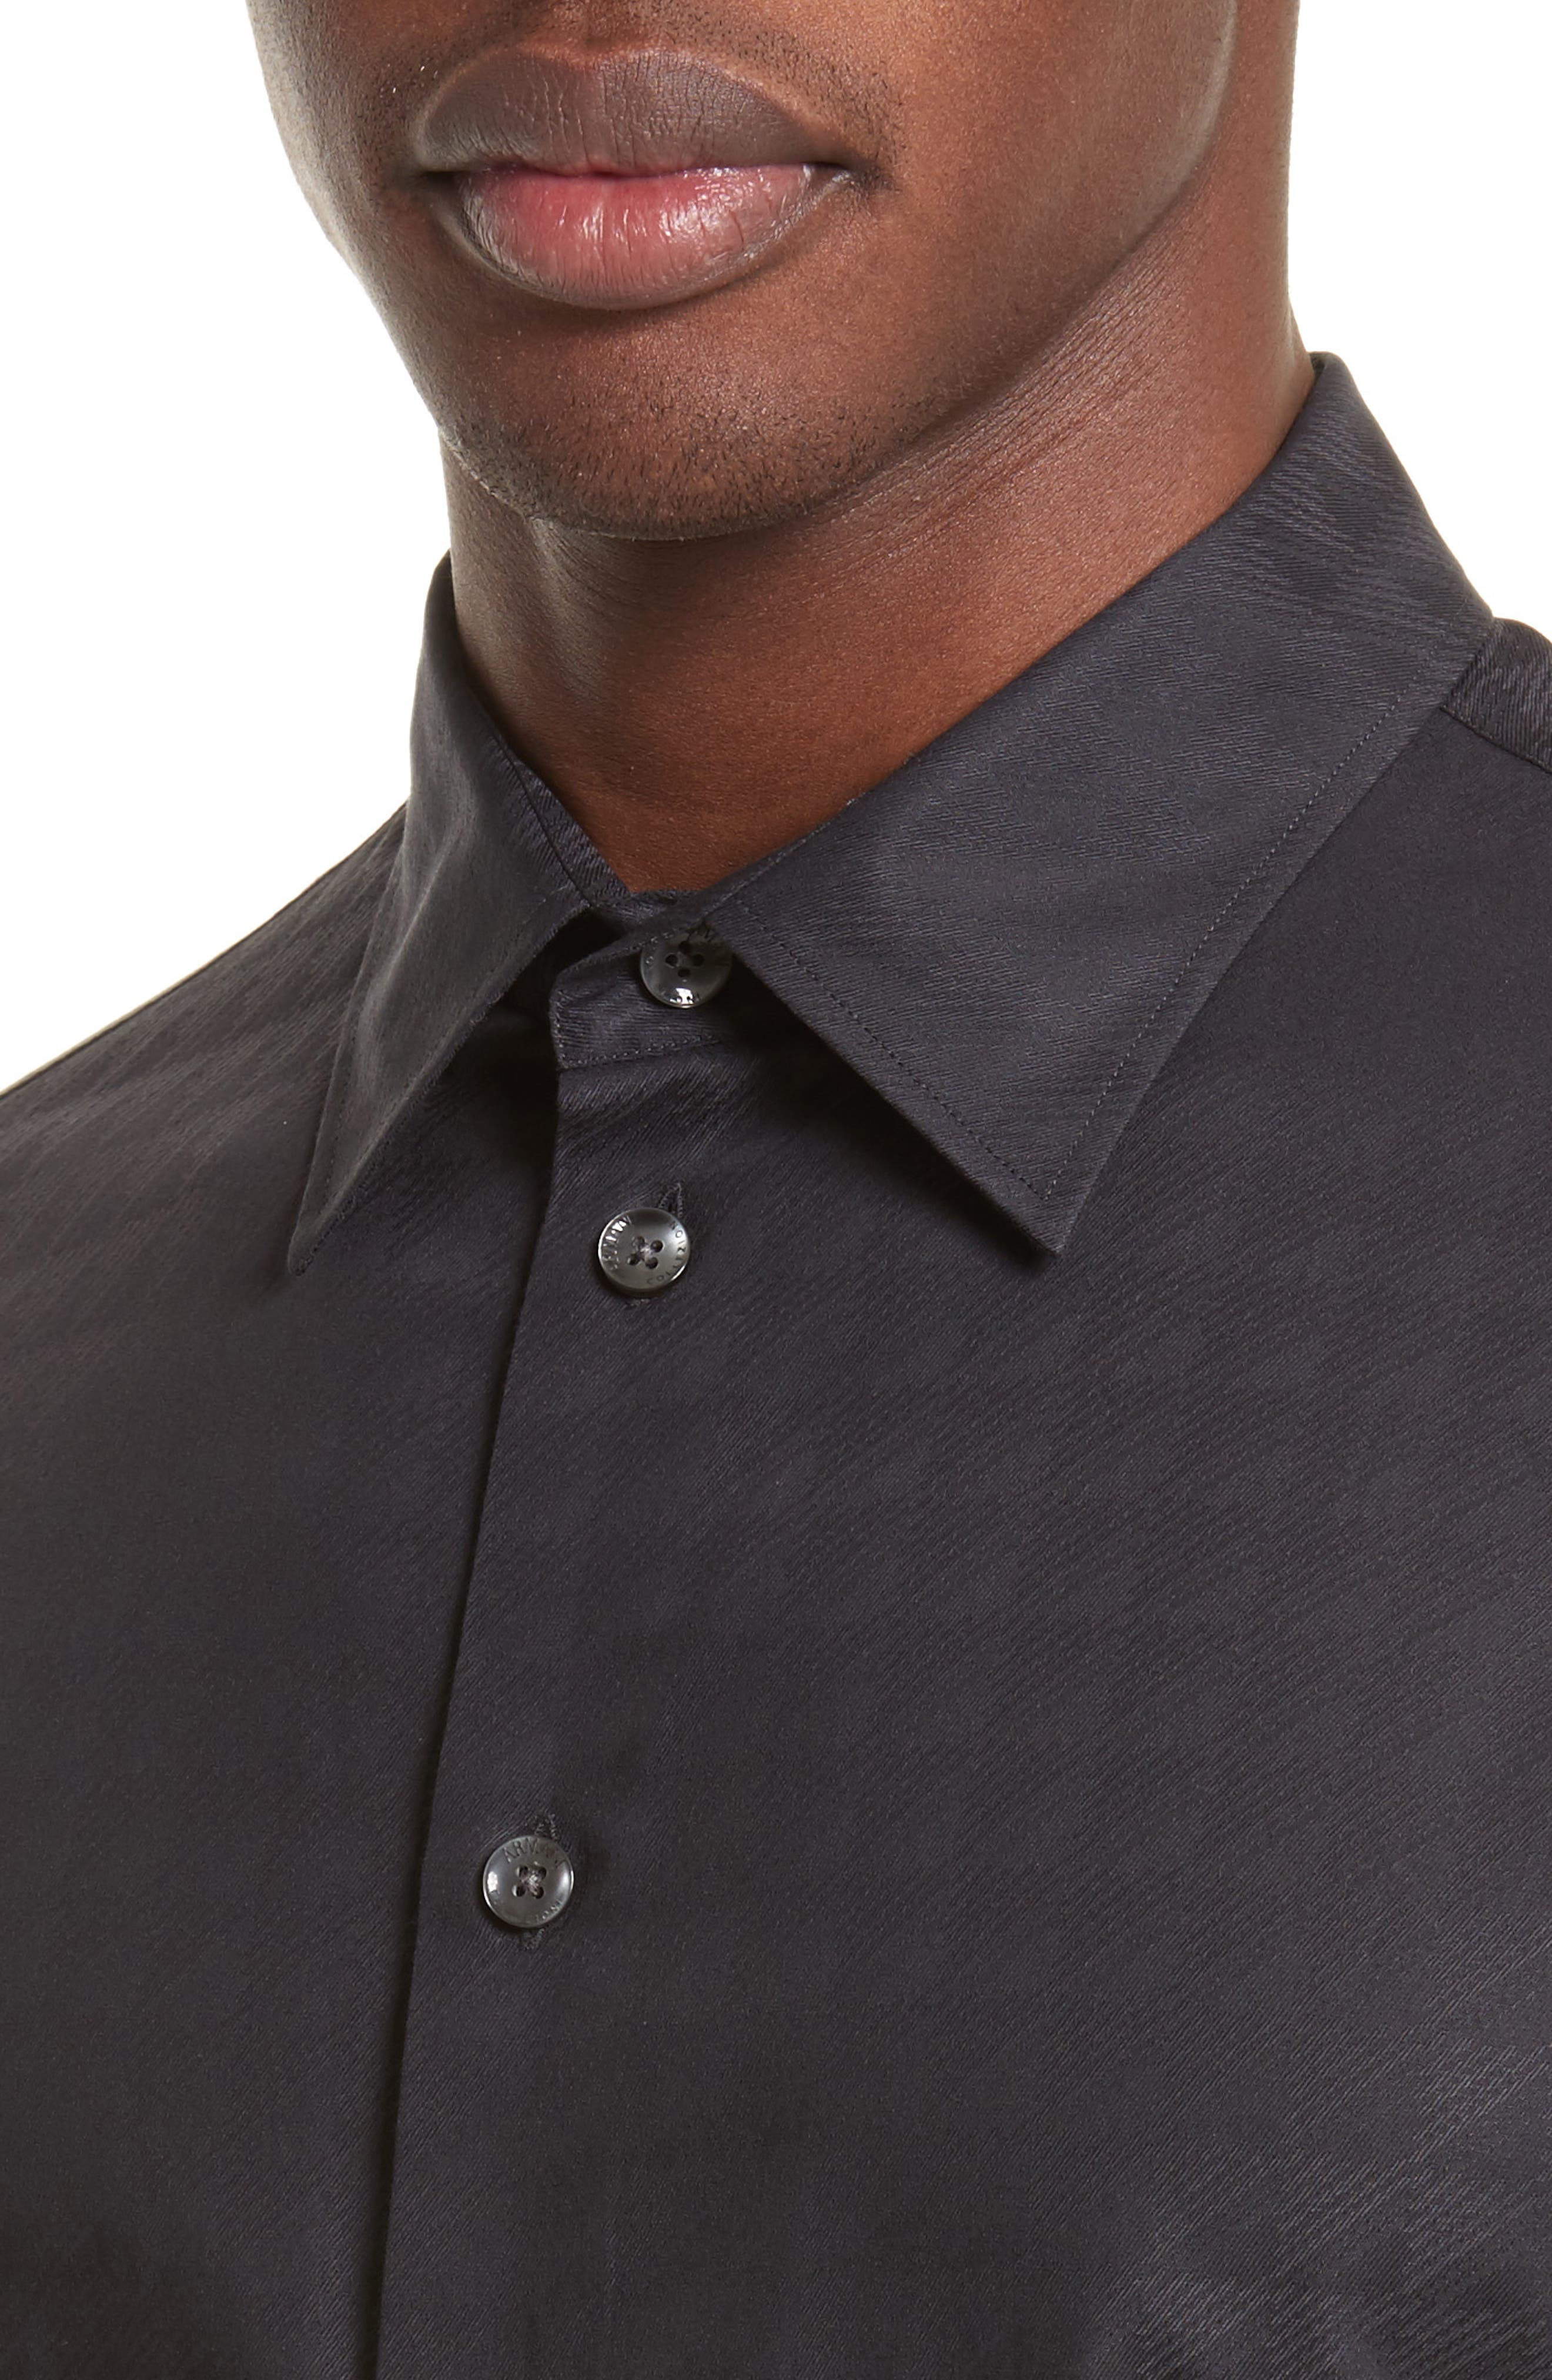 Regular Fit Geo Print Sport Shirt,                             Alternate thumbnail 2, color,                             Fancy Black